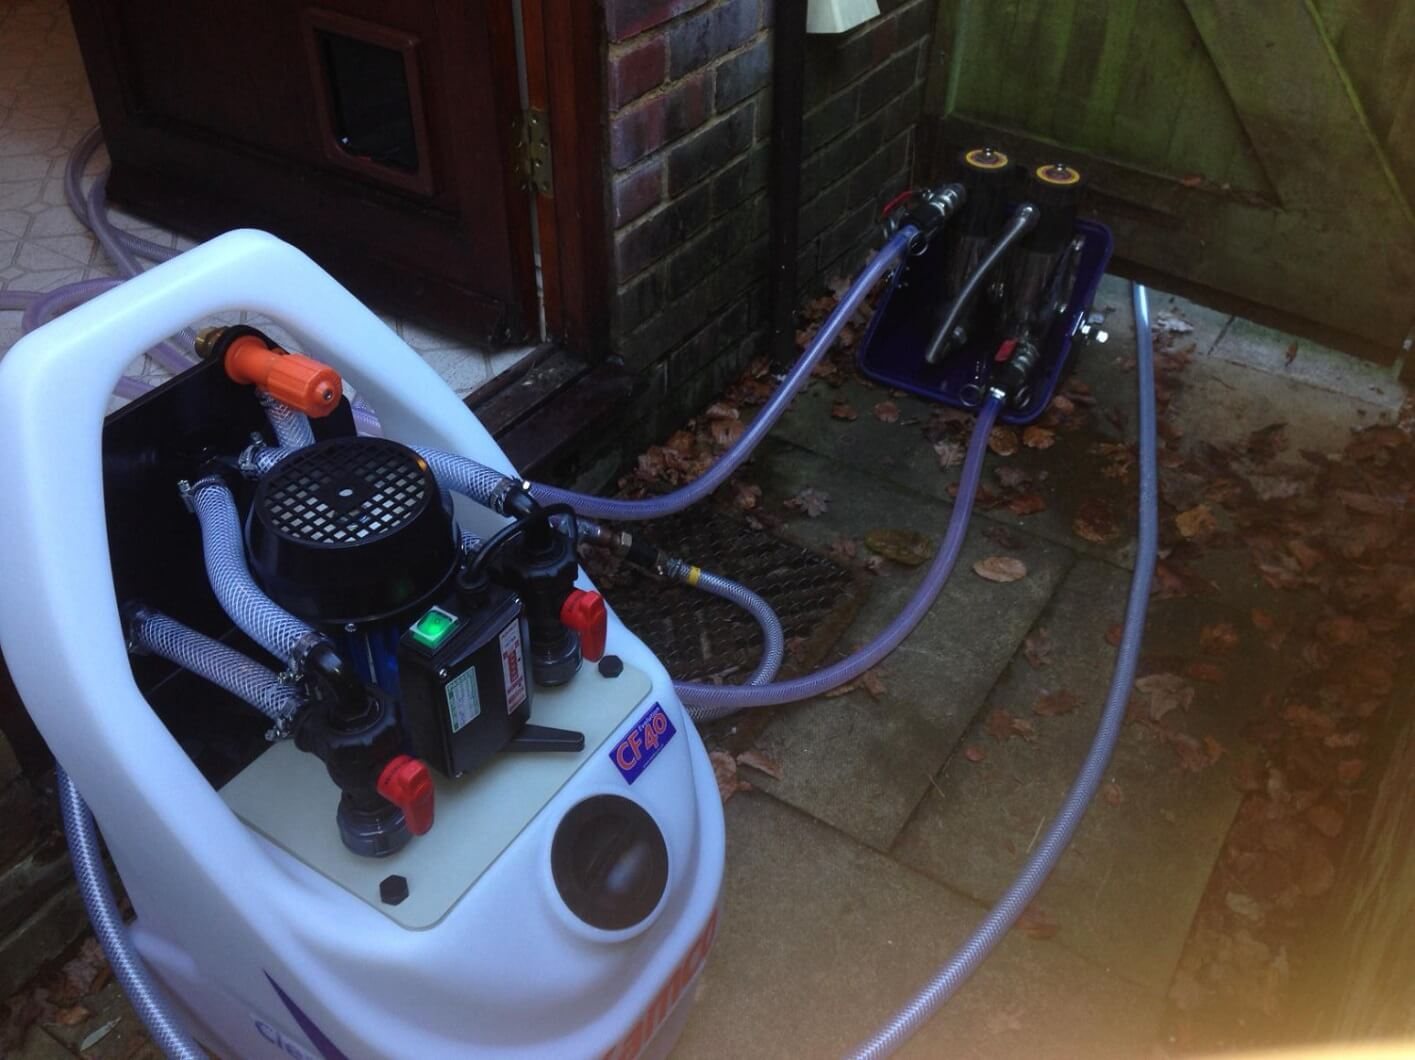 Power Flushing Medway - Reliable Plumbers & Heating Engineers Ltd are Gas Safe Registered-114518- We are Fighting for a Gas Safe Nation